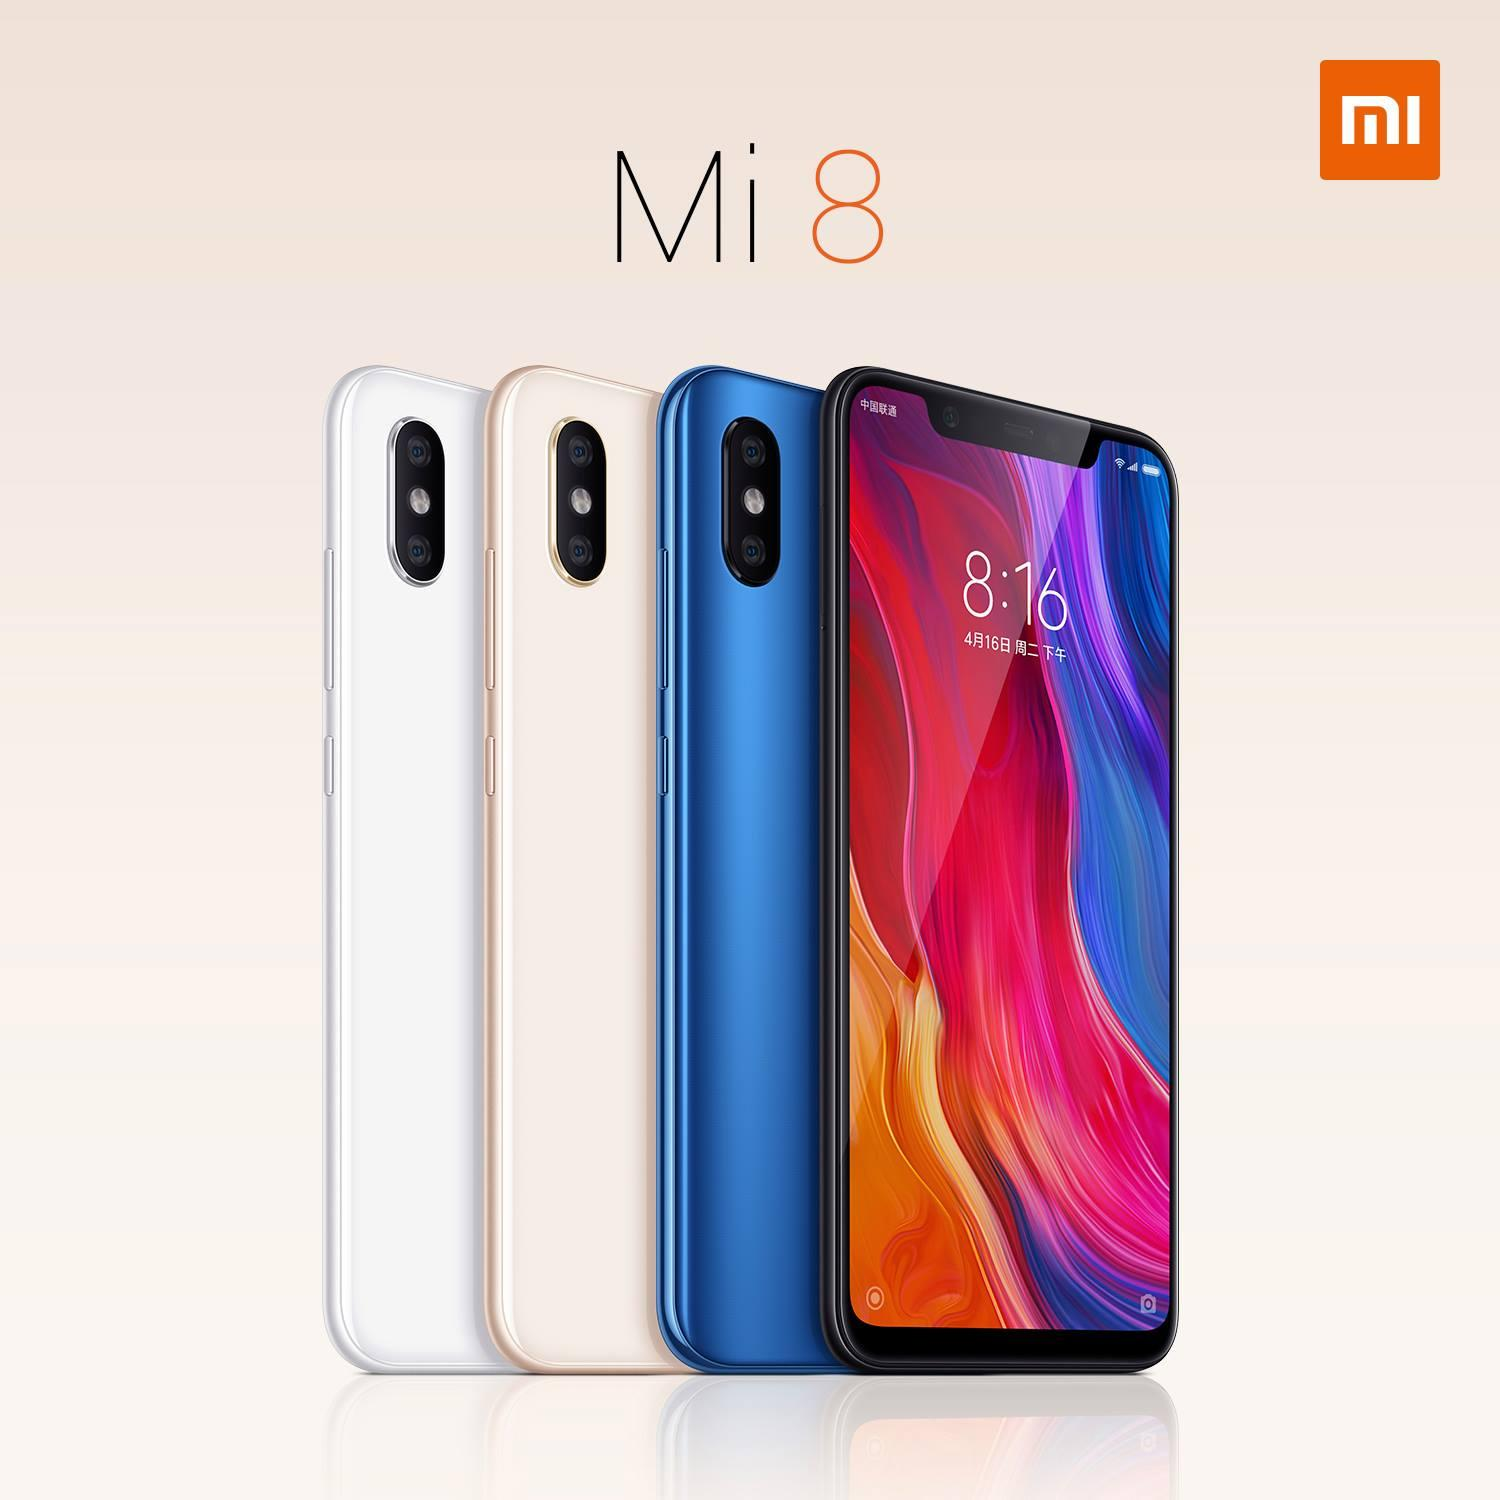 Xiaomi Mi Band 3 Launching with Mi 8 on 31 May